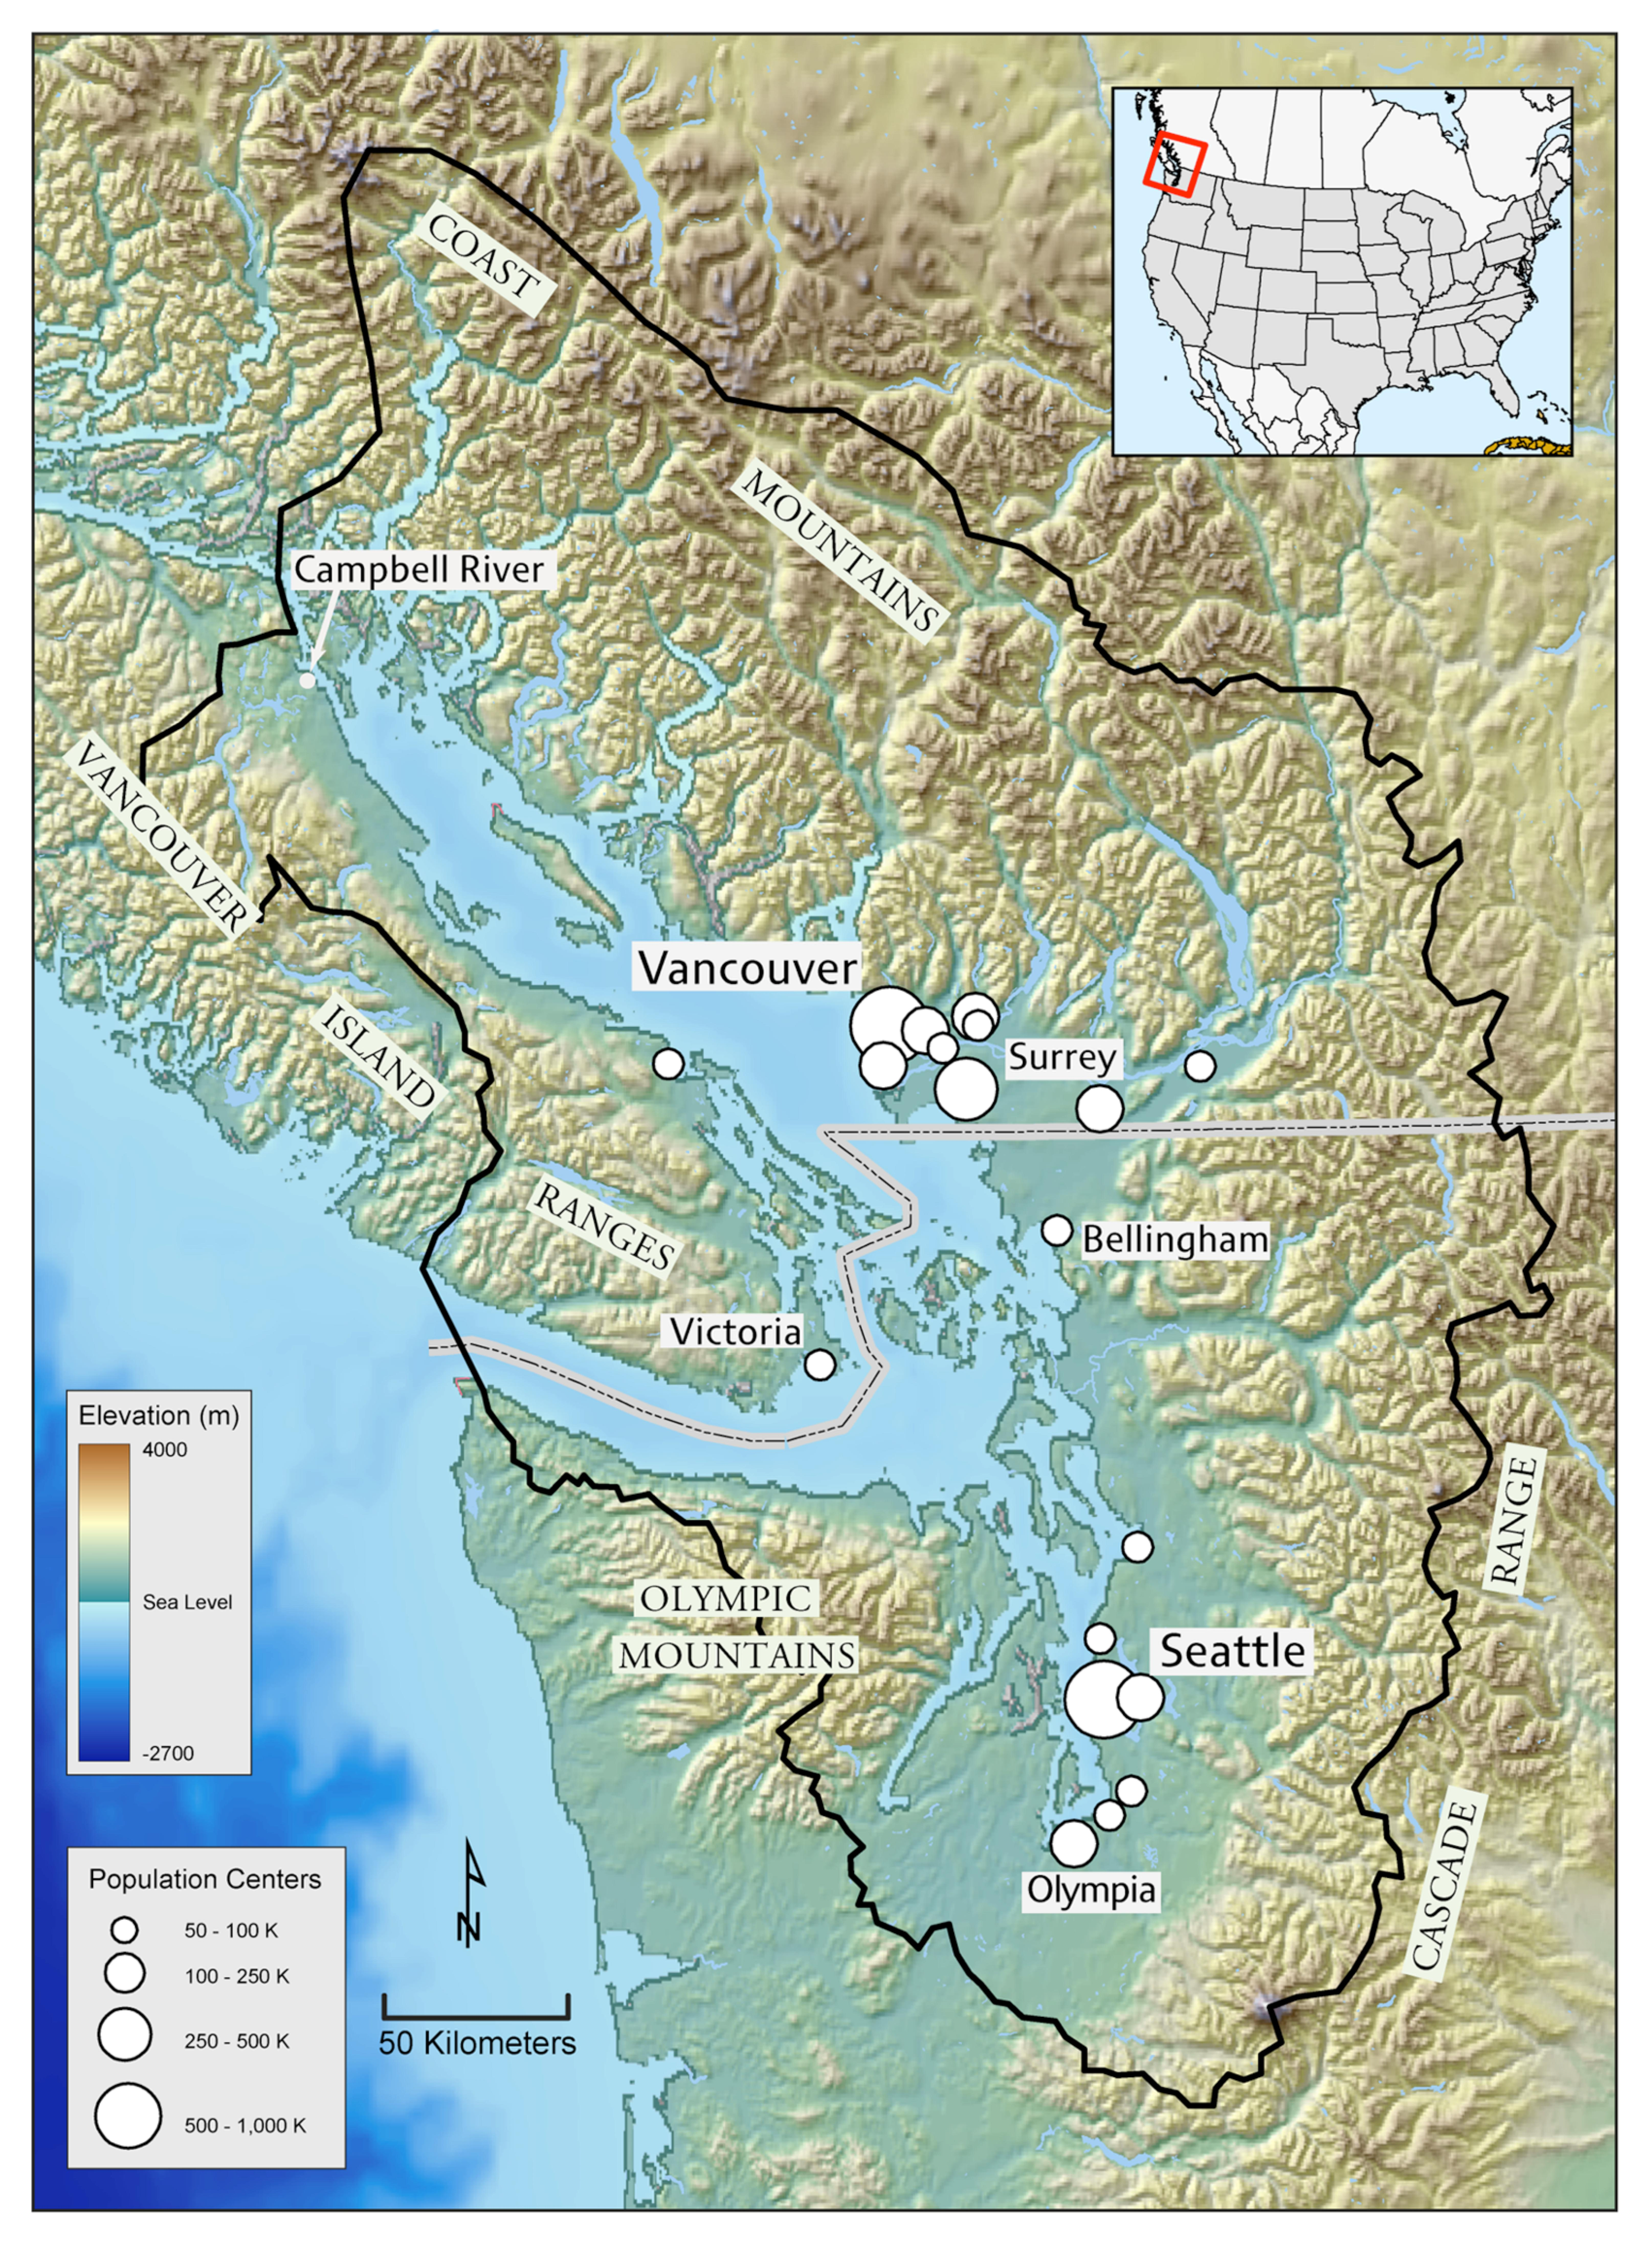 The Salish Sea Is A 17 000 Sq Km Ecosystem Consisting Of The Puget Sound